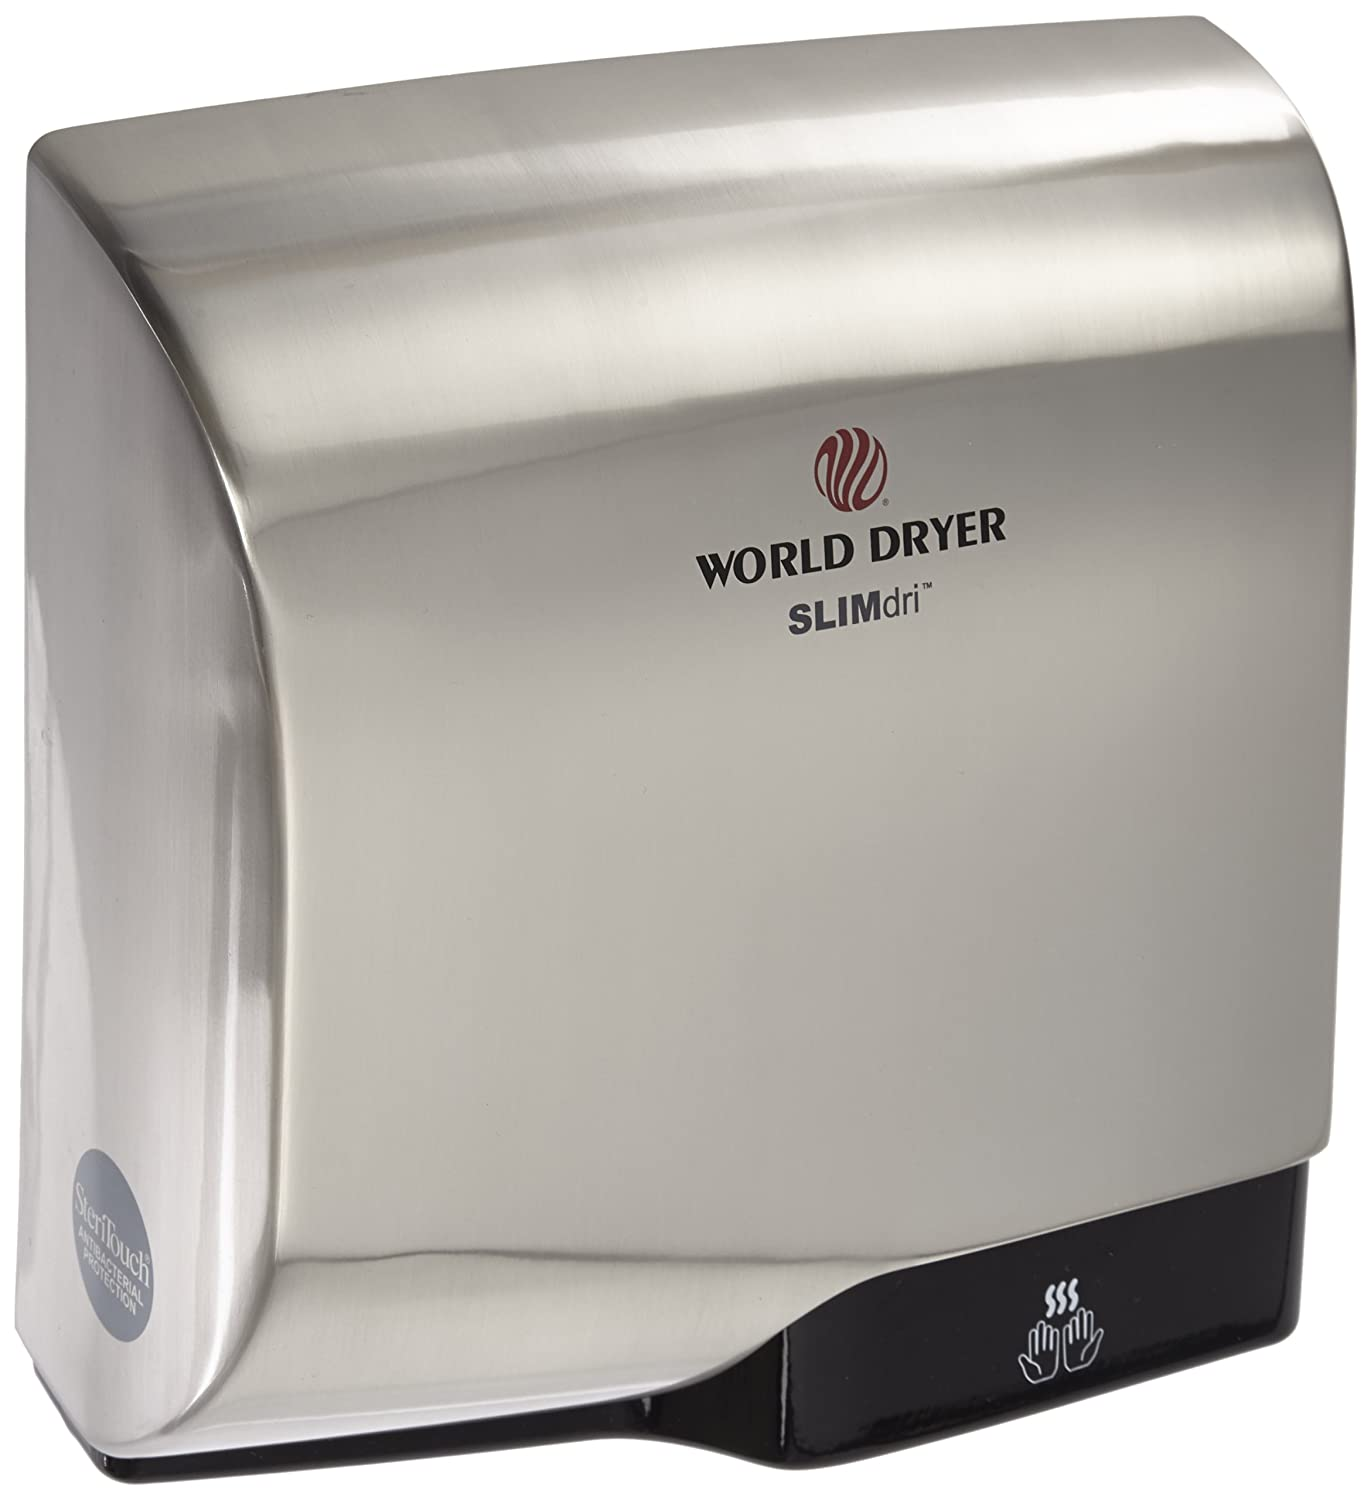 CDM product World Dryer L-971 SLIMdri Surface Mounted ADA Compliant Automatic Hand Dryer with Aluminum Brushed Chrome Cover, 120/208/240V big image